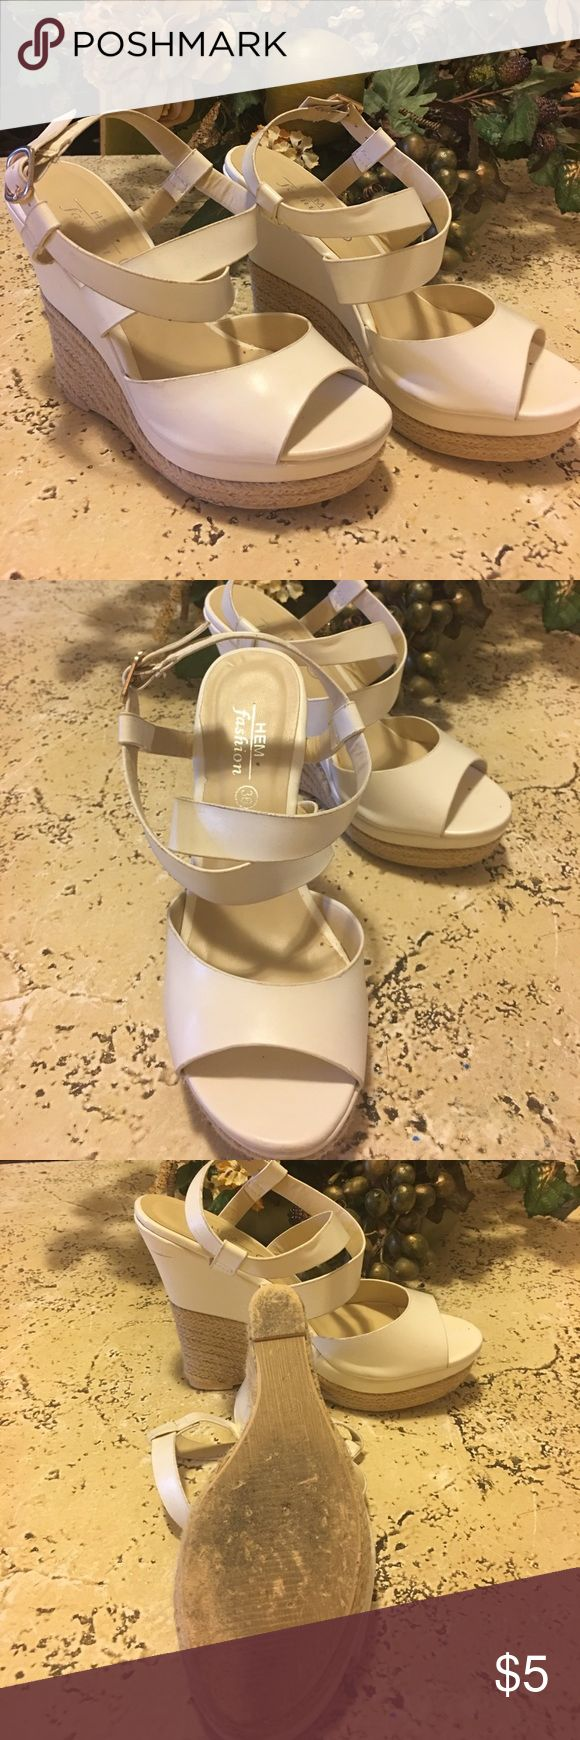 Hem fashion ladies shoes Size 36 light cream color one imperfection hardly noticeable see pictures Hem Fashion Shoes Platforms